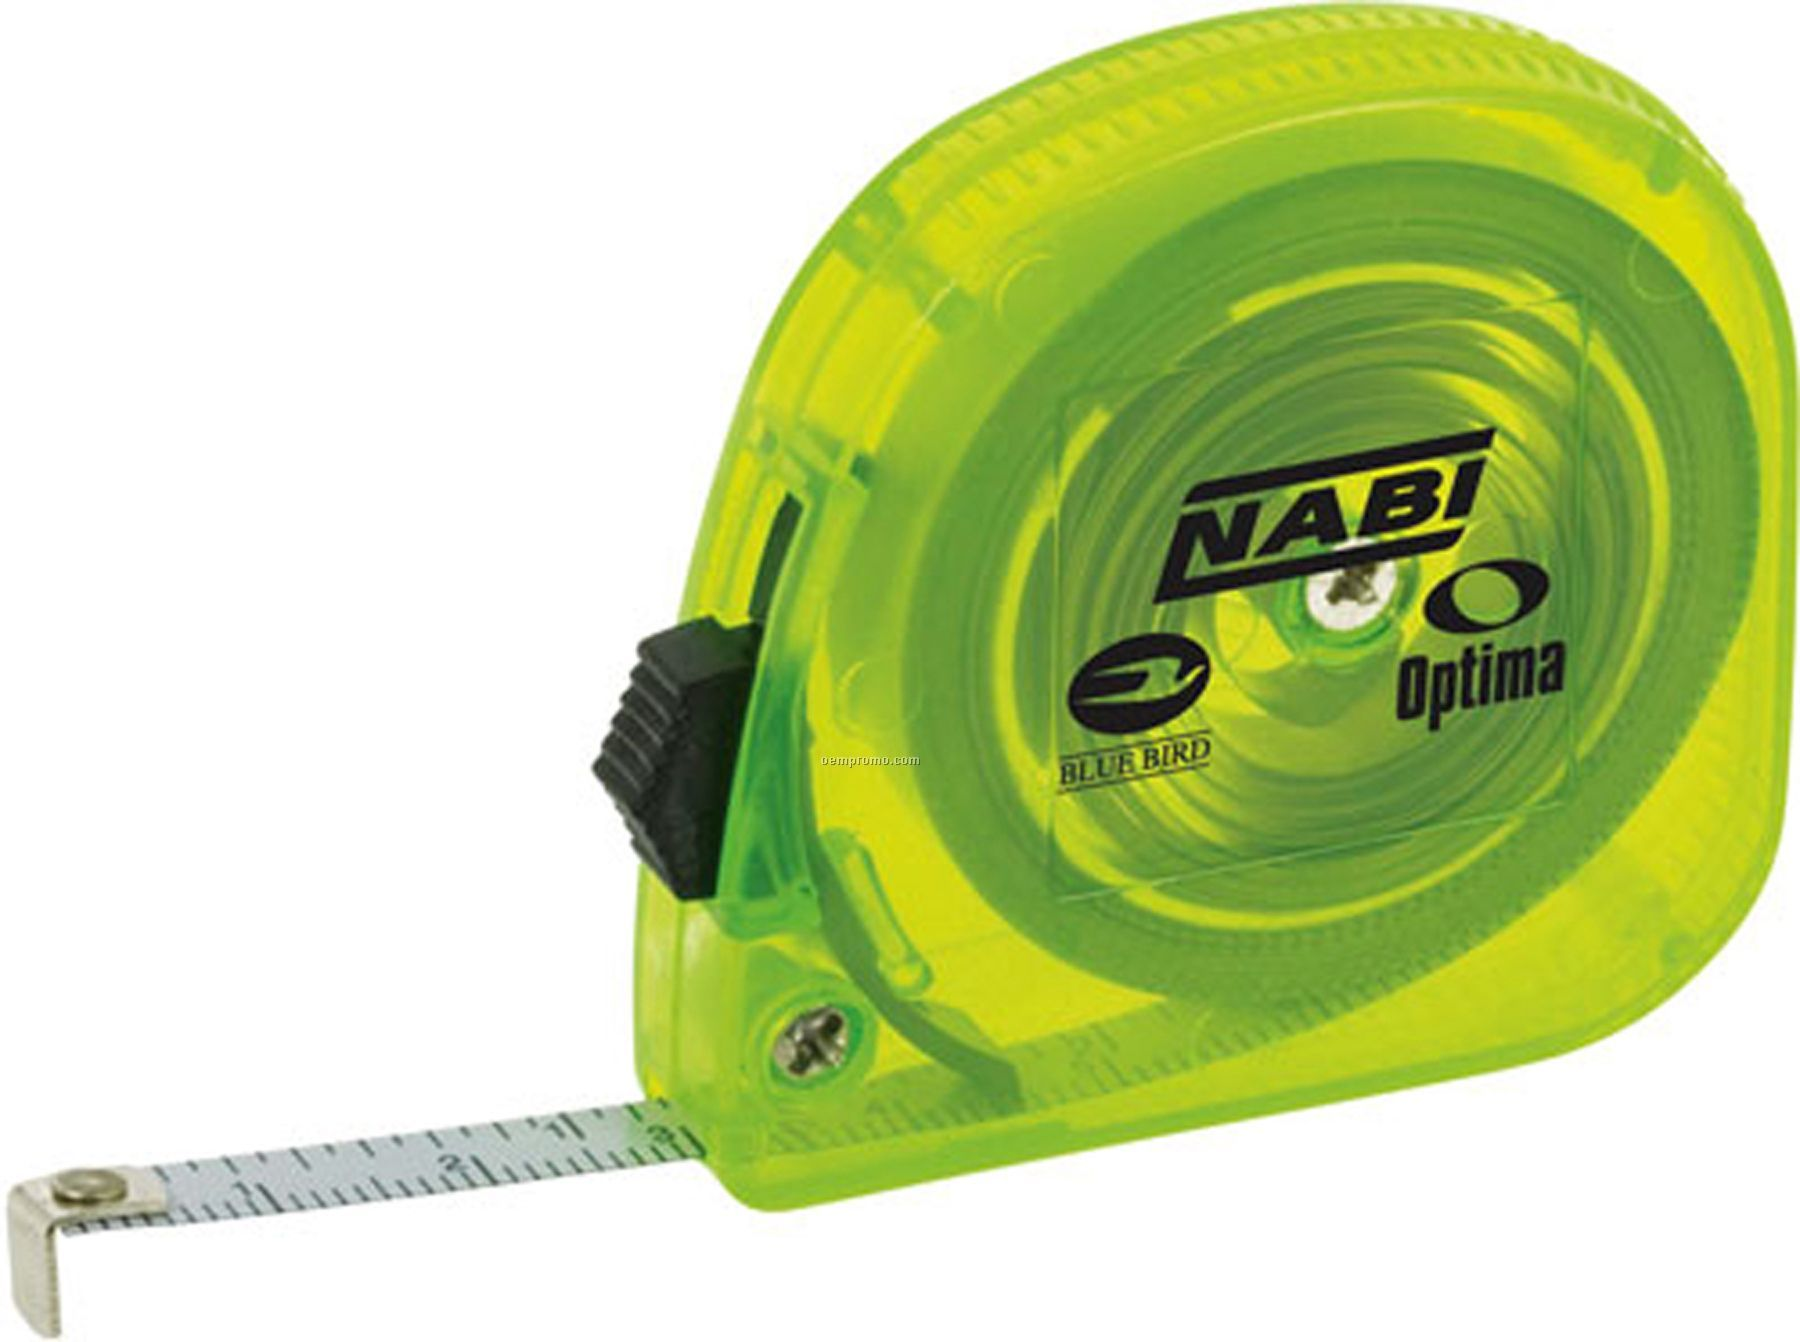 10 Feet Retractable Tape Measure